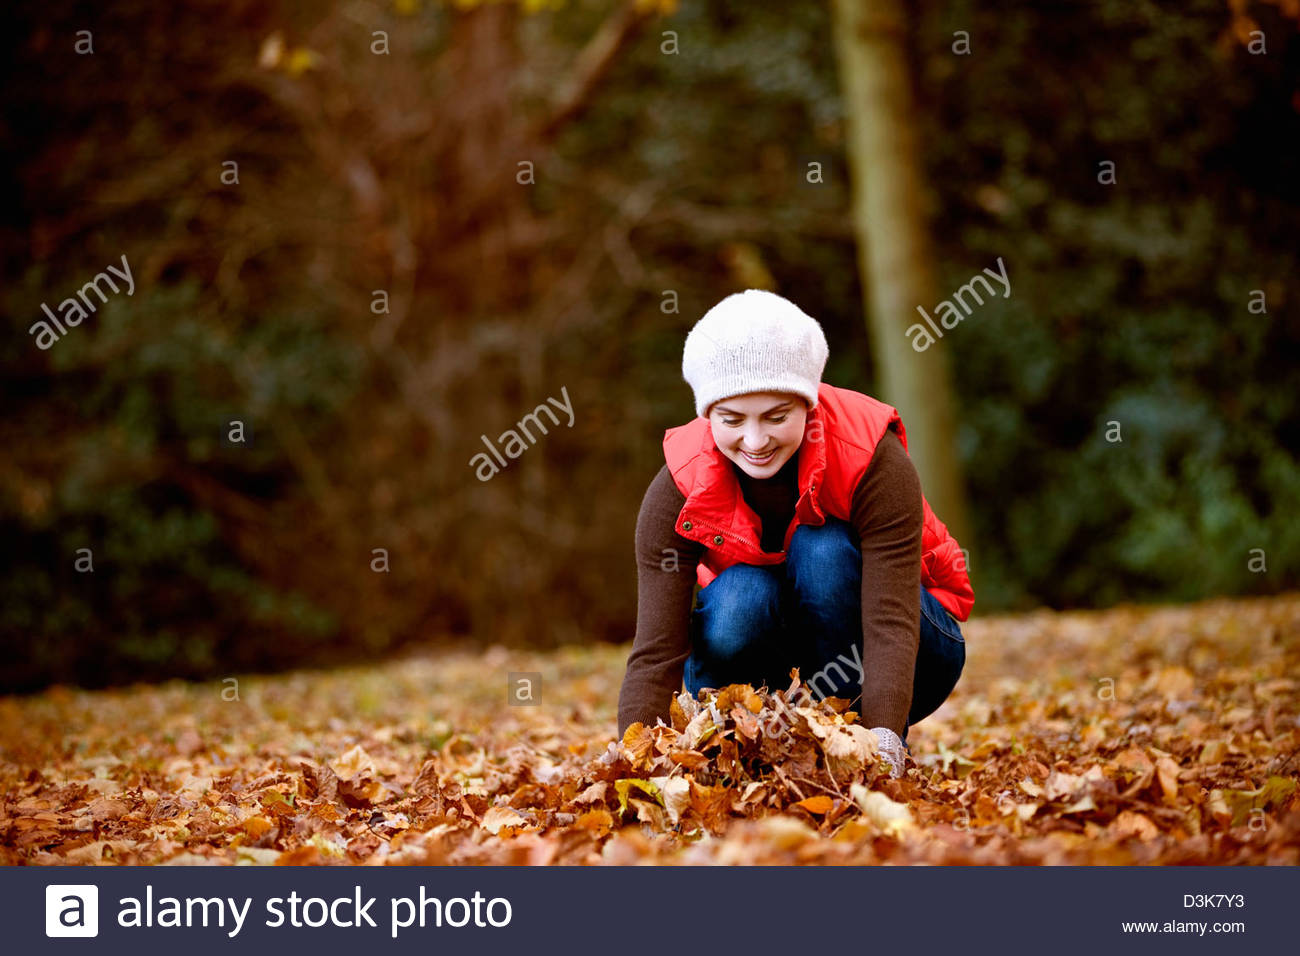 A woman gathering autumn leaves - Stock Image